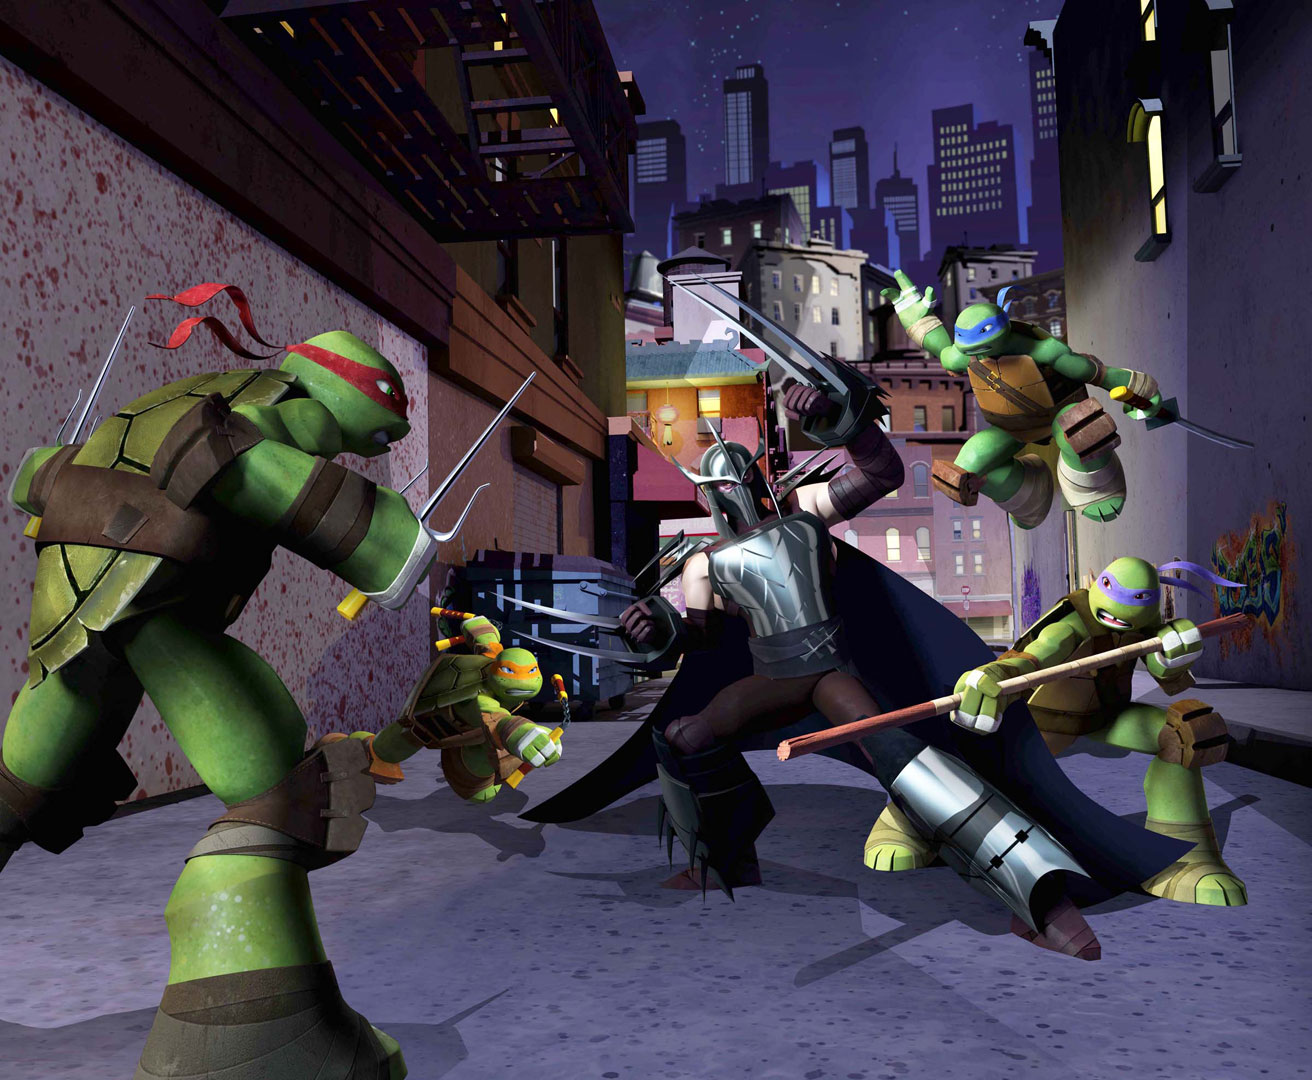 Tmnt Wallpapers Tmnt Backgrounds Tmnt Images